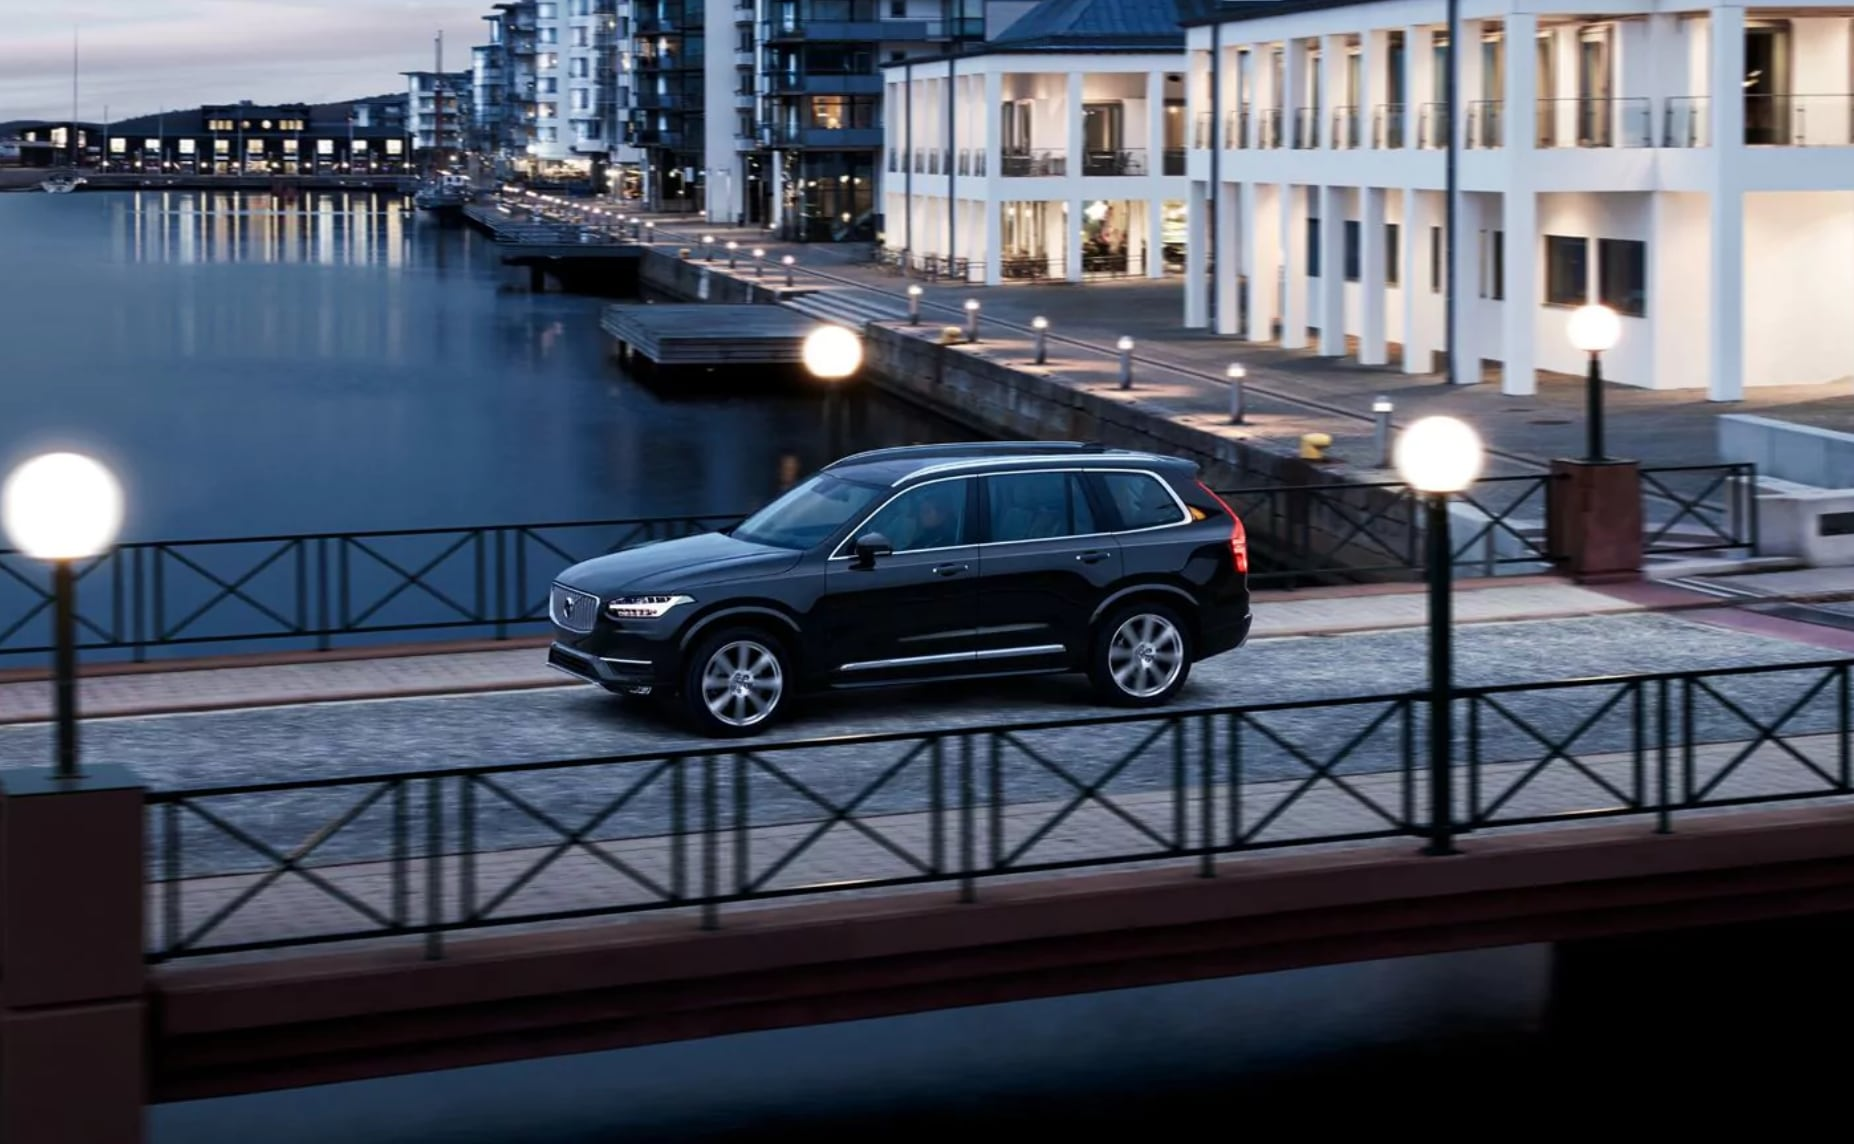 2019 volvo xc90 | mclarty volvo cars of little rock